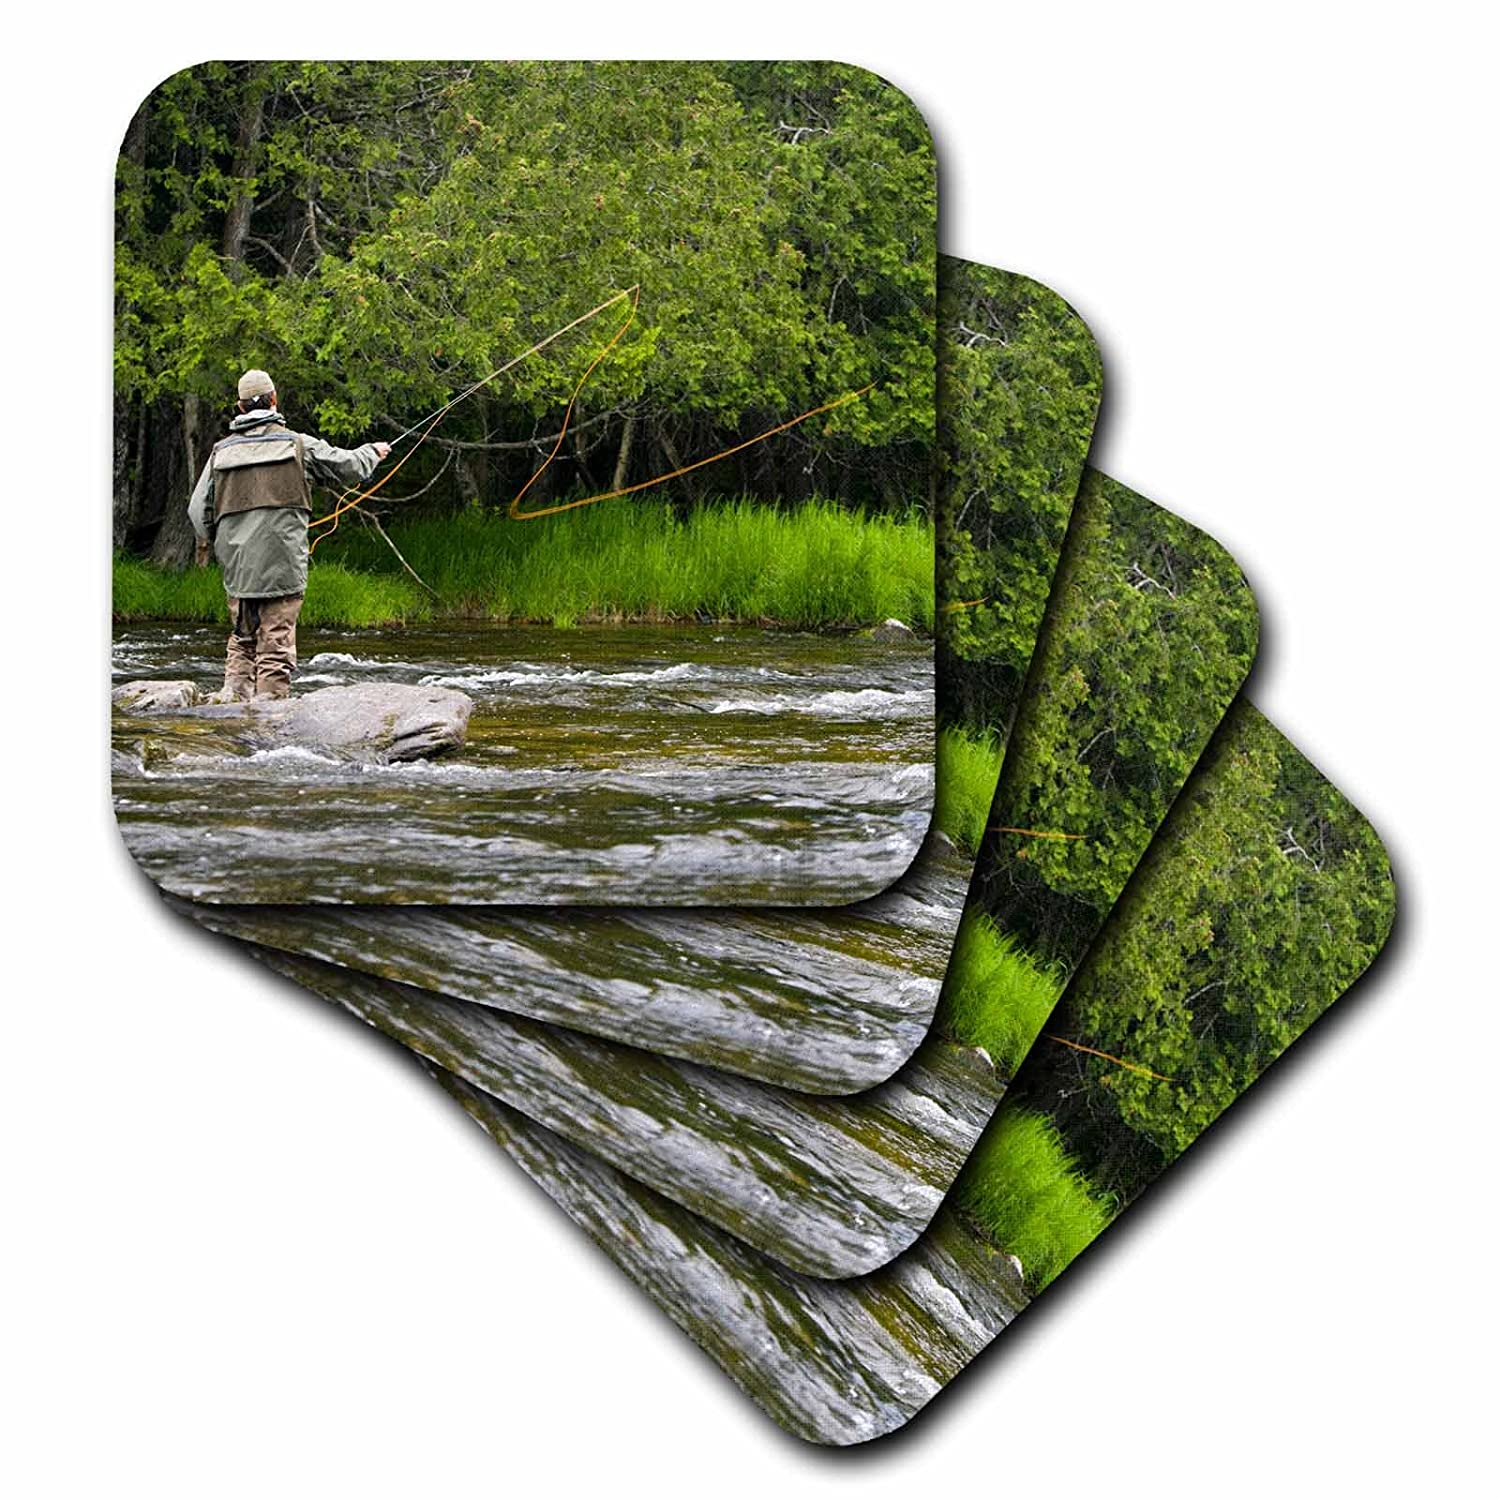 US30 JMO1434 NH Set of 4 Connecticut River Ceramic Tile Coasters 3dRose cst/_92407/_3 Fly-fishing Jerry and Marcy Monkman